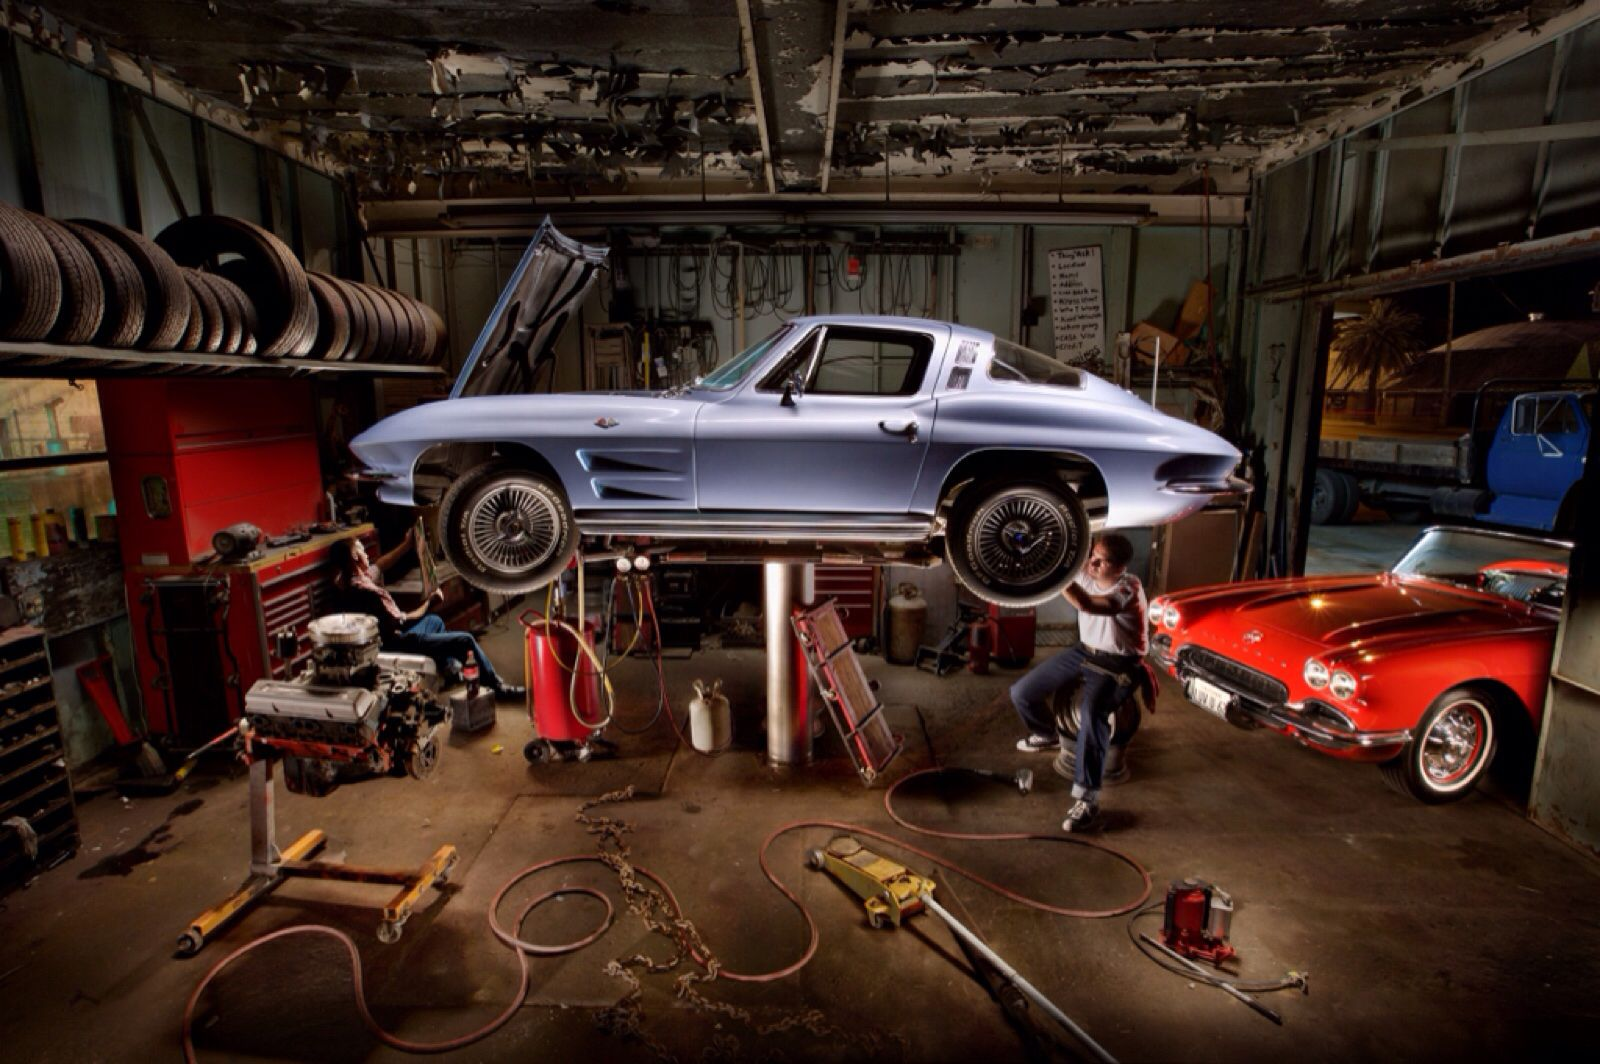 62 Corvette A Cooke And A Smile Corvette Garage Painting With Light Light Painting Night Photography Mechanics Classic Cars Vintage Cars Americana Res